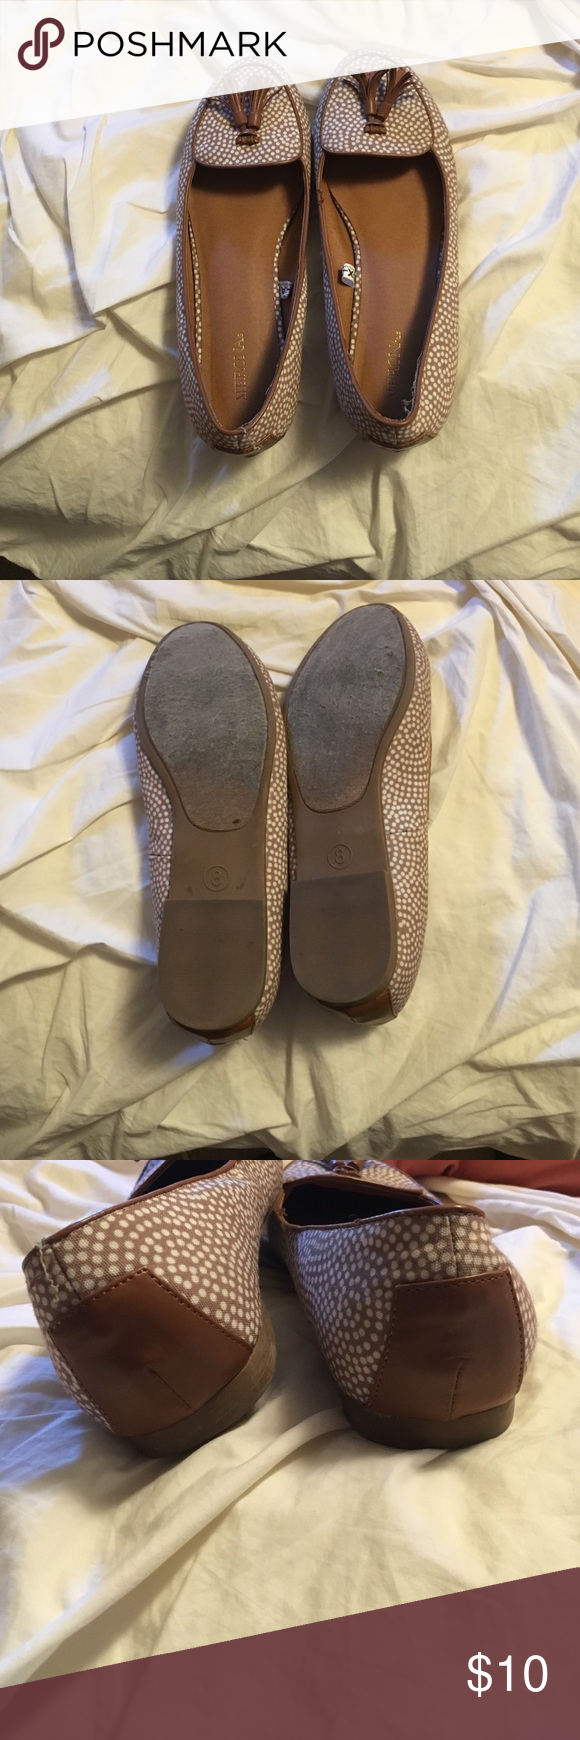 Brown/tan flats flats with tie detail. Natural wear but in great shape! Merona Shoes Flats & Loafers